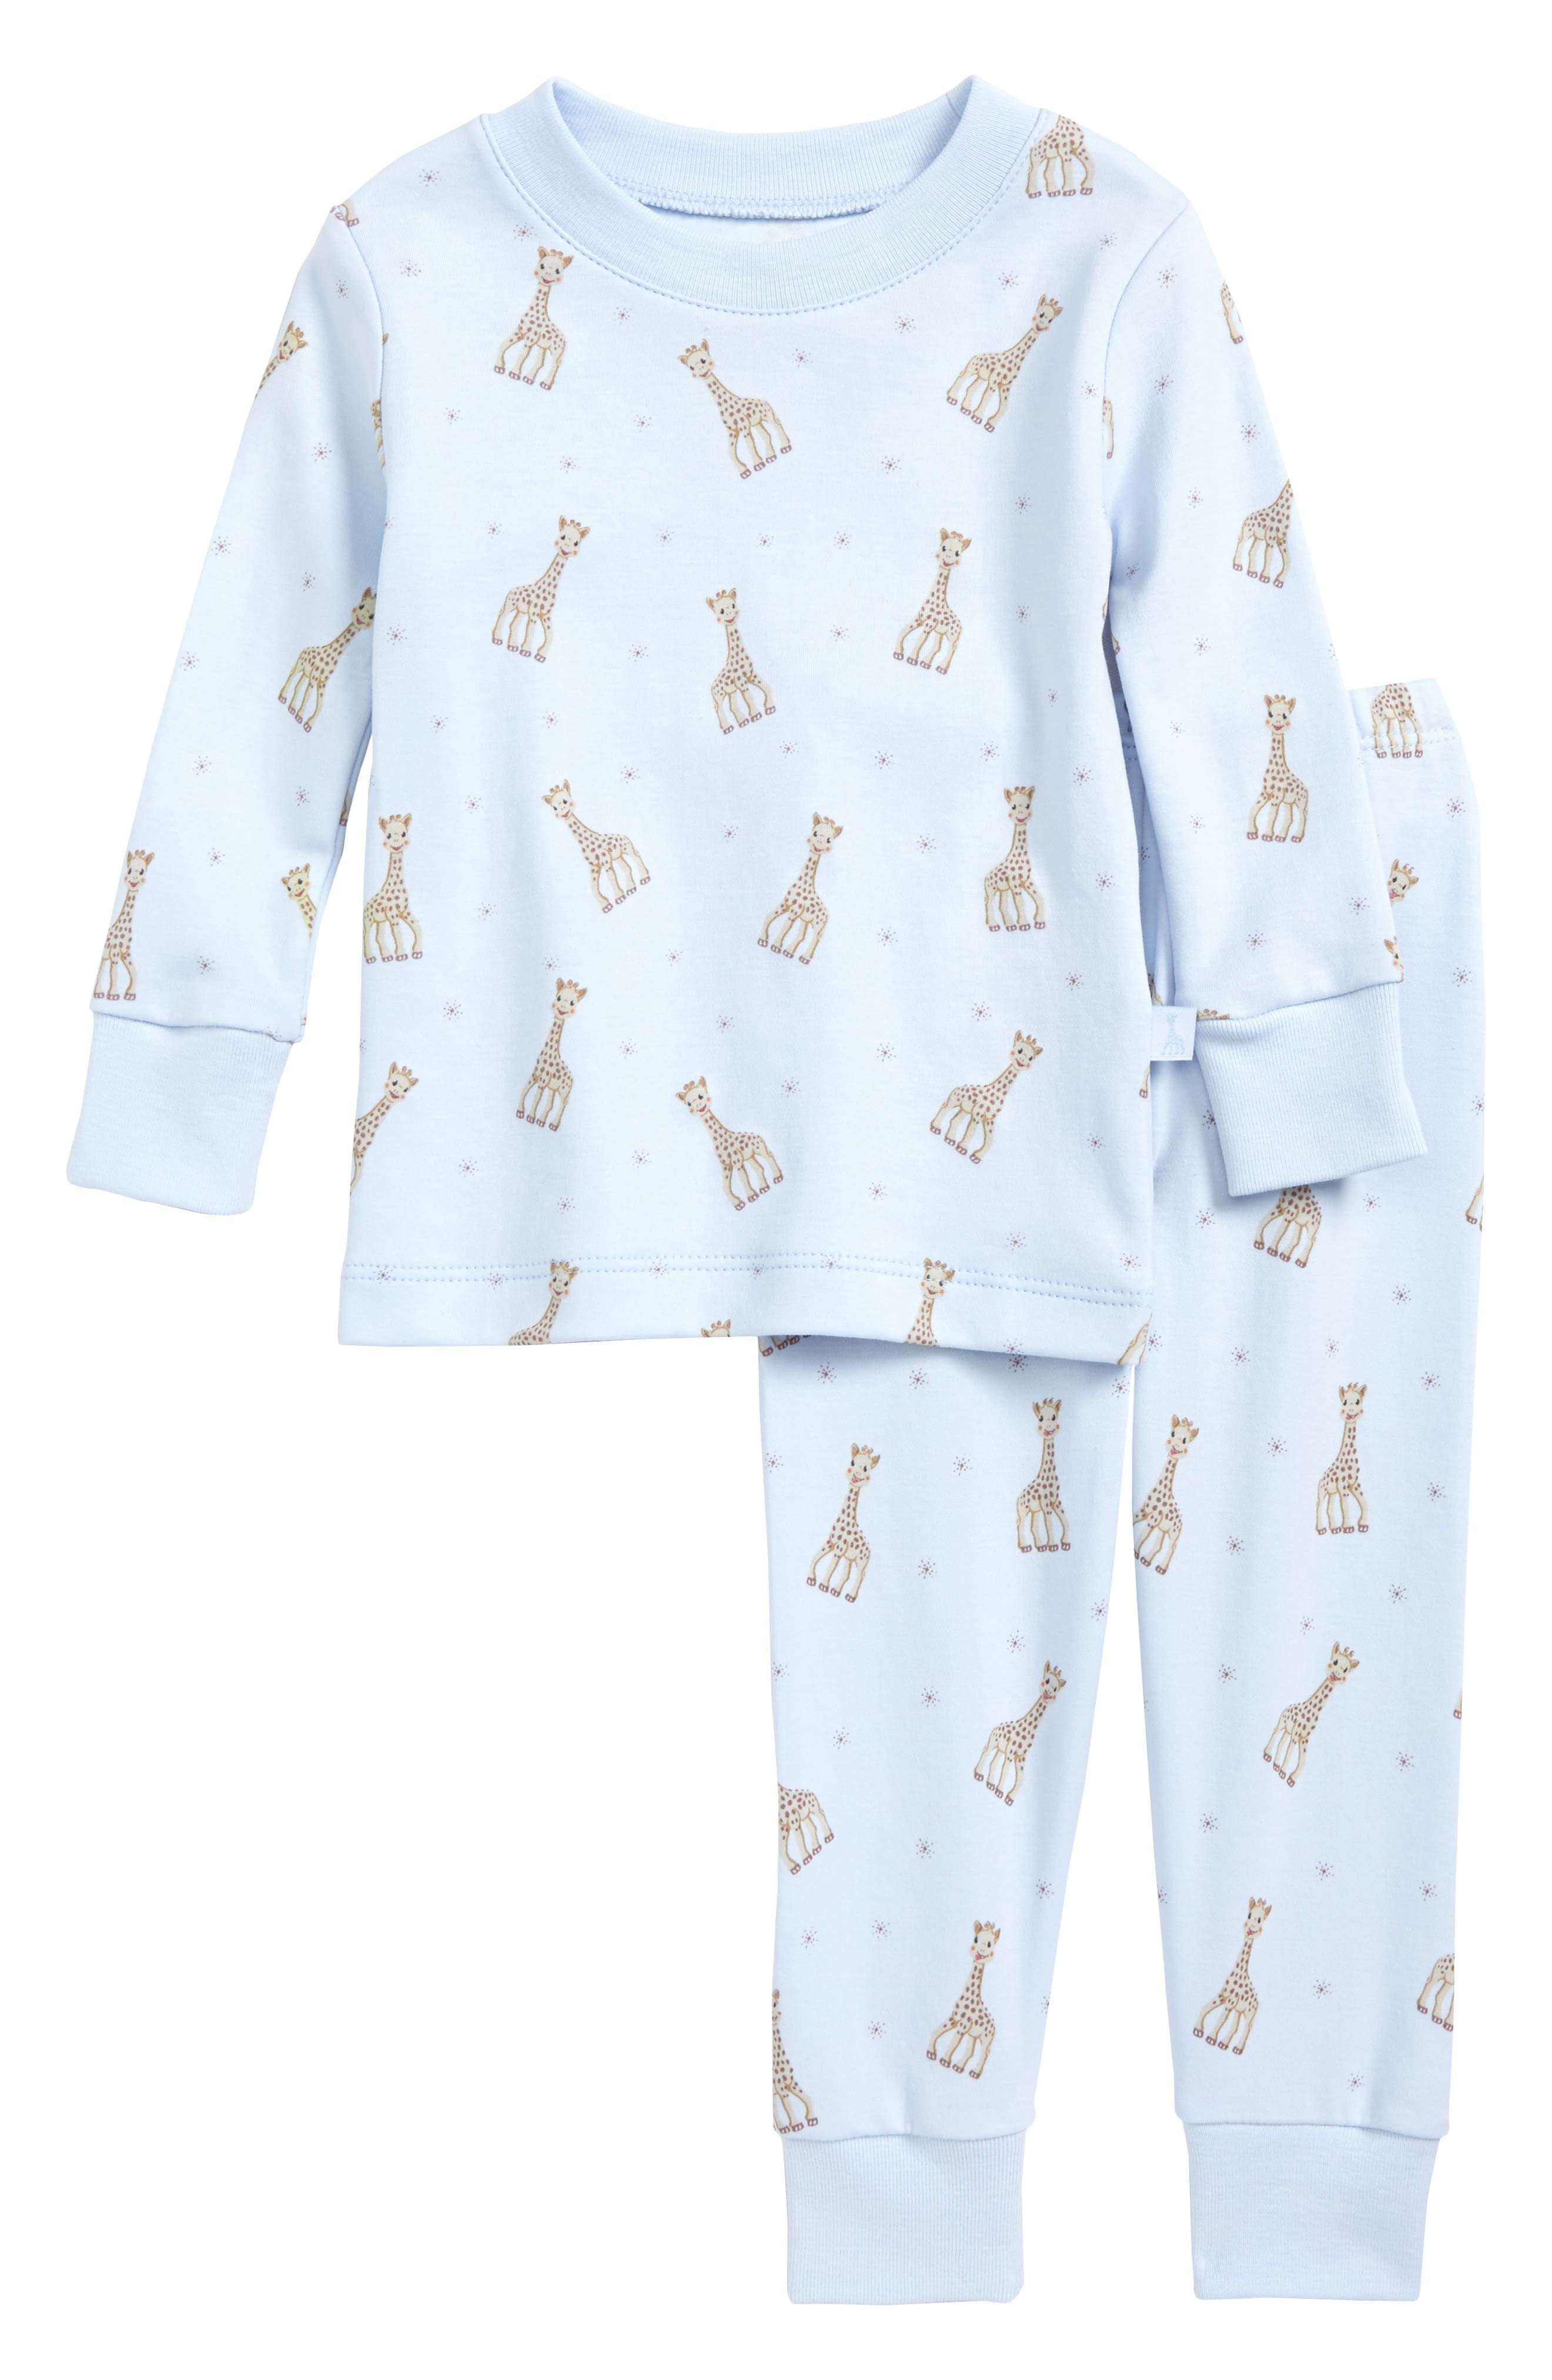 Alternate Image 1 Selected - Kissy Kissy Sophie la Girafe Fitted Two-Piece Pajamas (Baby Boys)